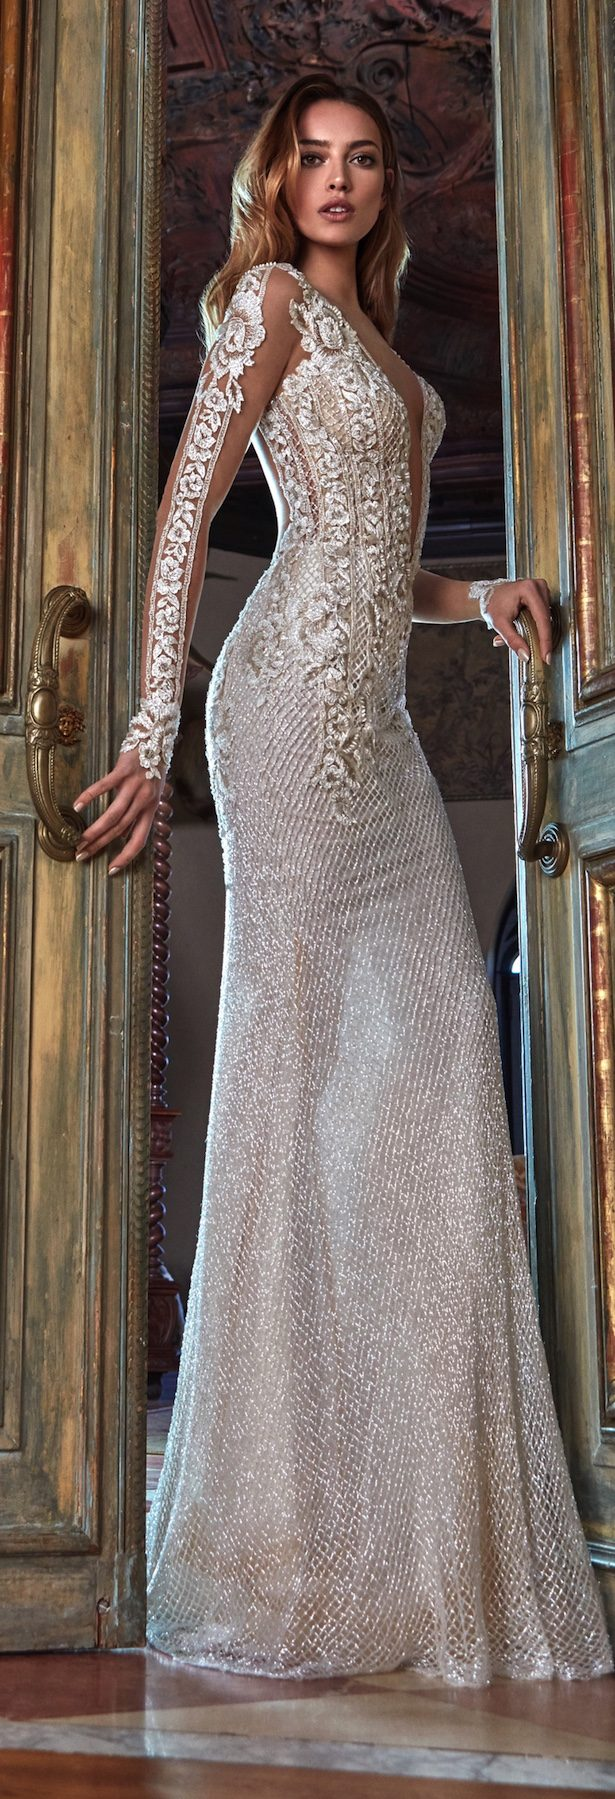 Galia Lahav Spring 2017 Collection